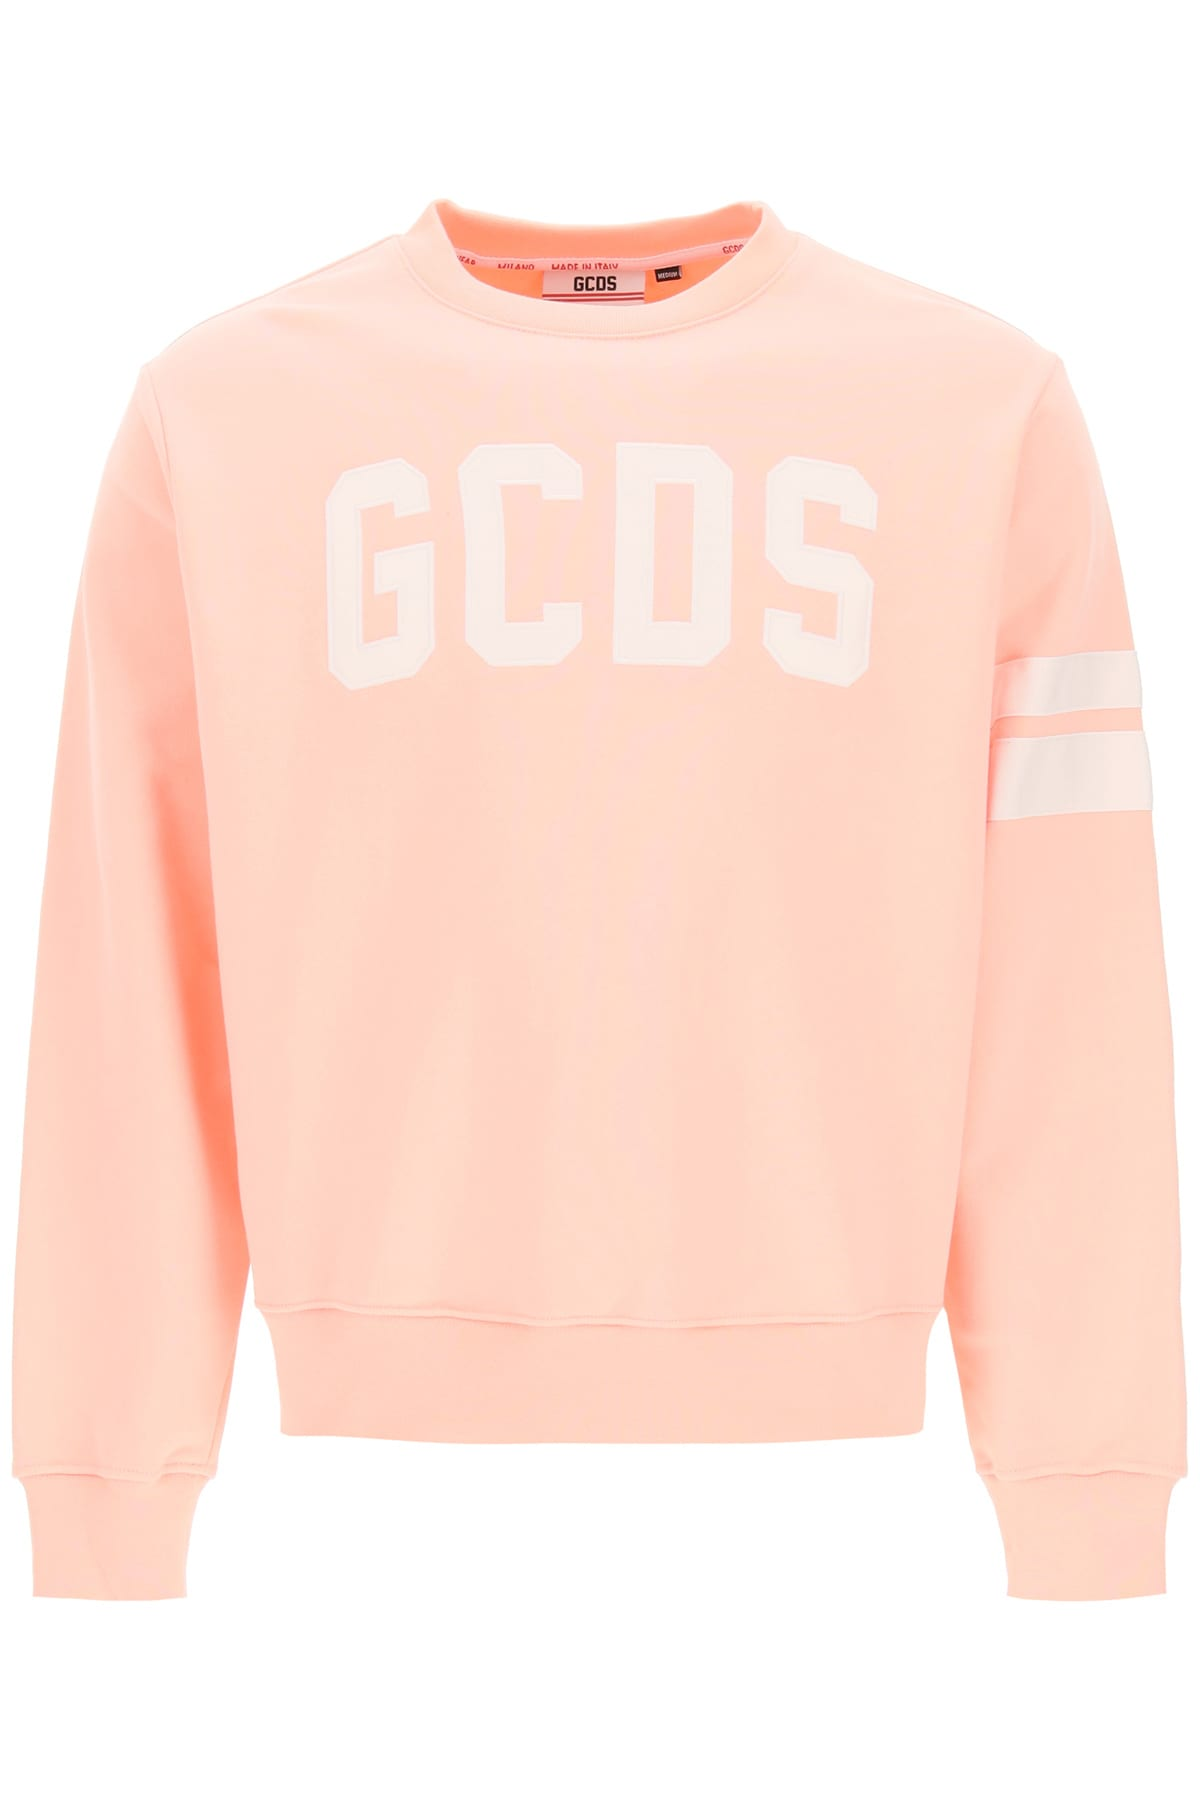 Gcds CREW-NECK SWEATSHIRT WITH LOGO